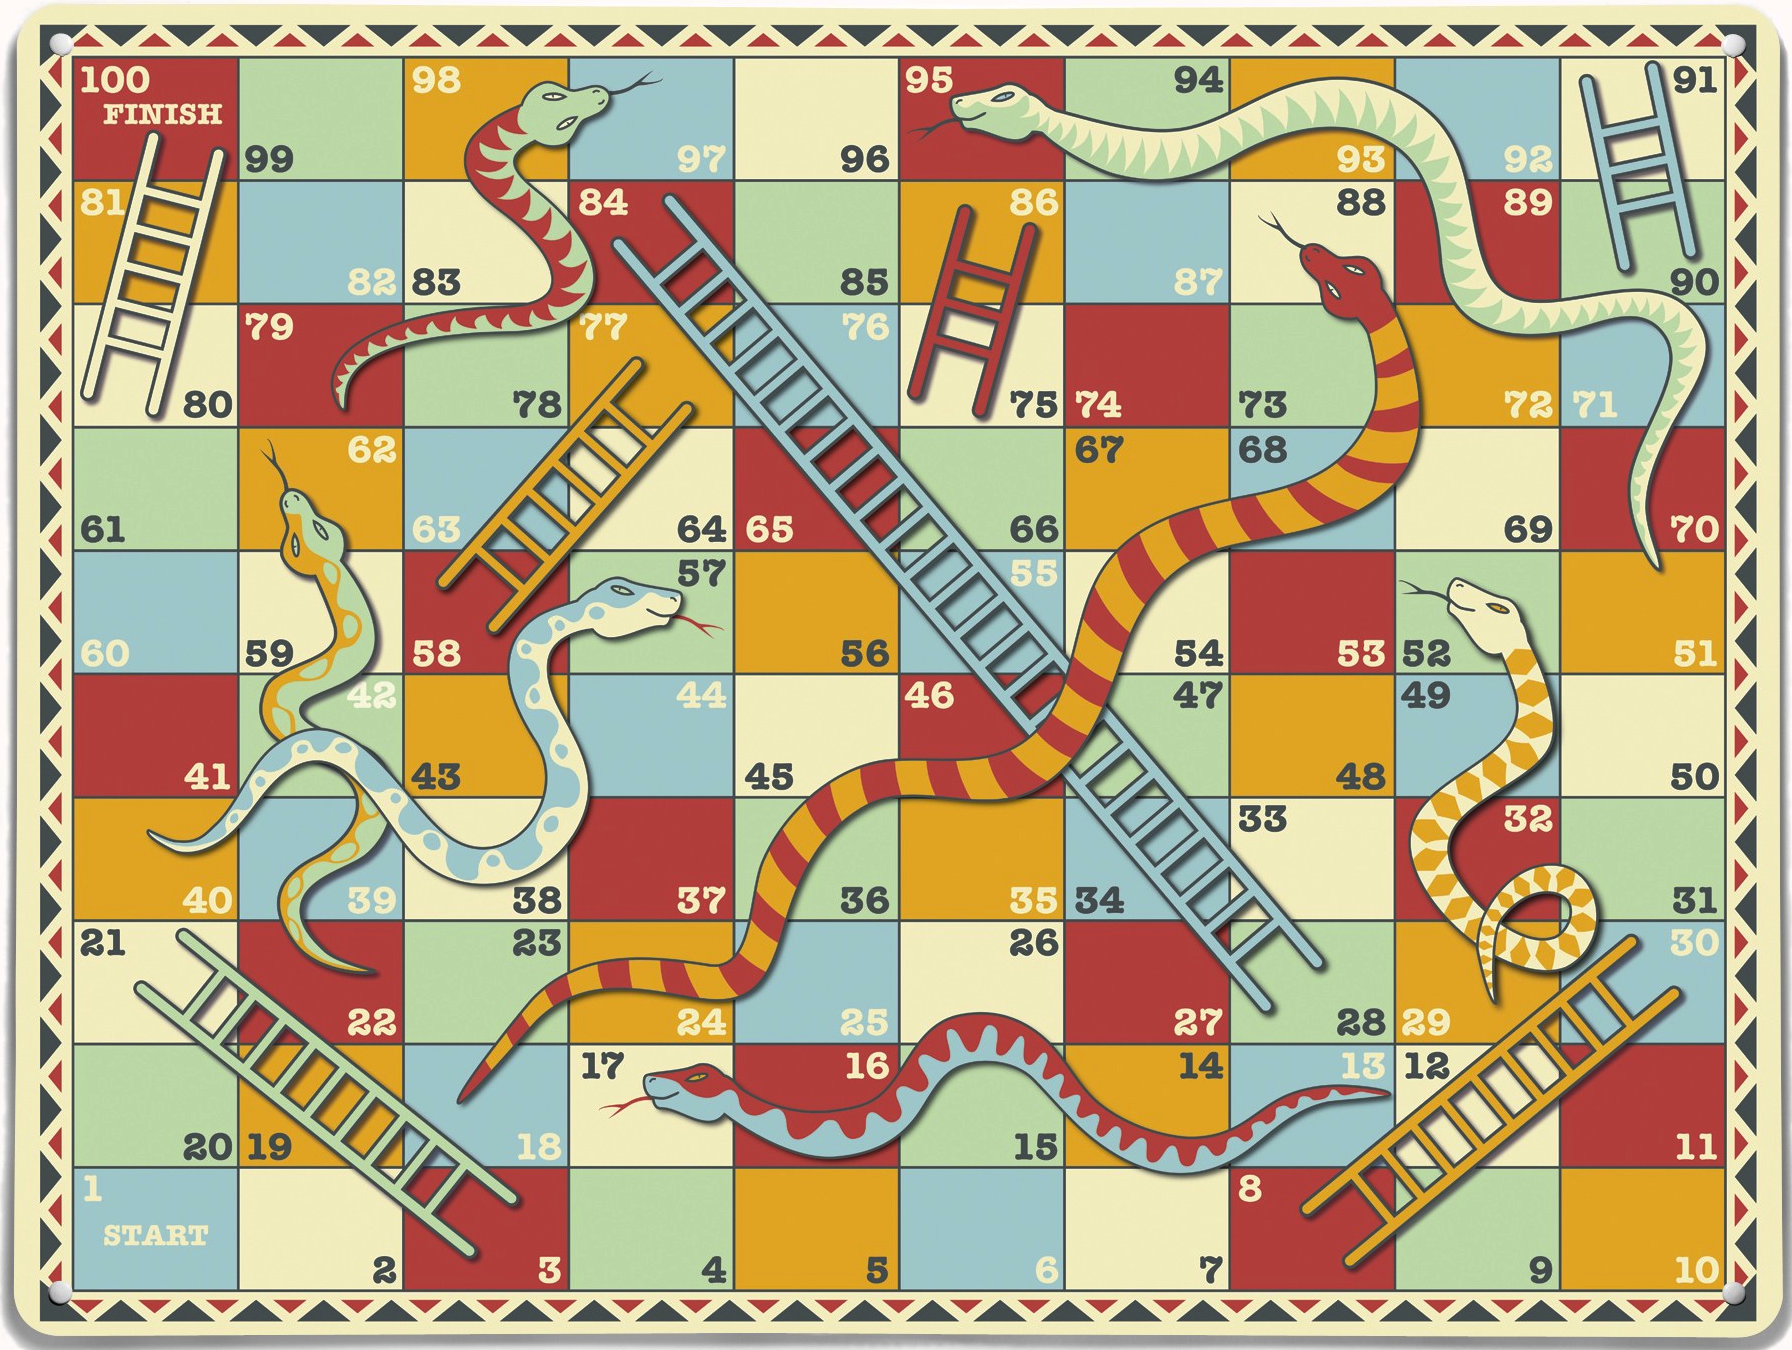 Pictures images snakes and ladders board game template wallpaper - Snakes And Ladders Classic Board Gamesgame